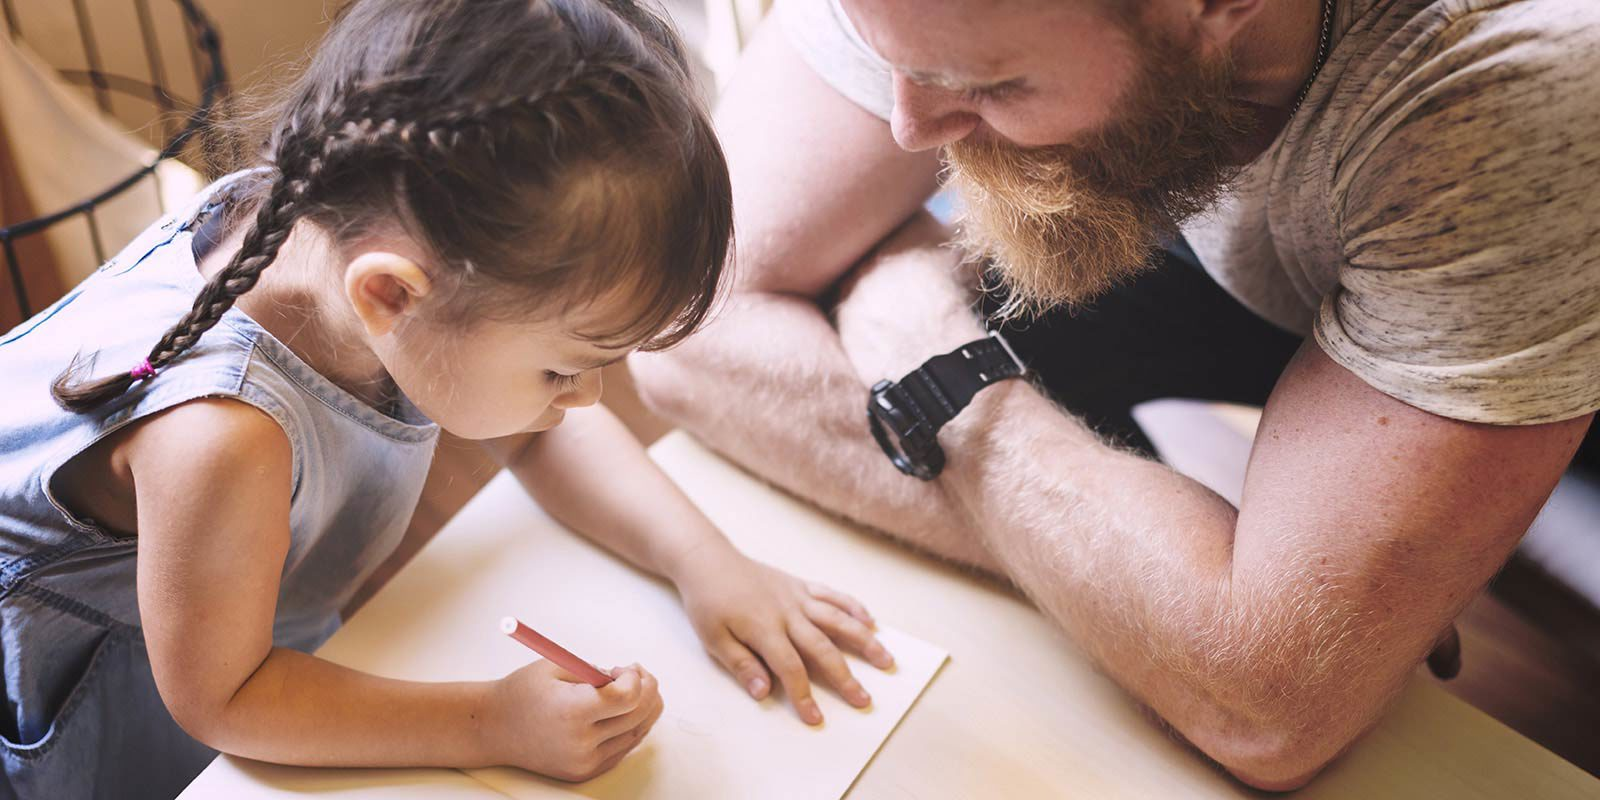 Man watching young girl draw with pencil and paper.